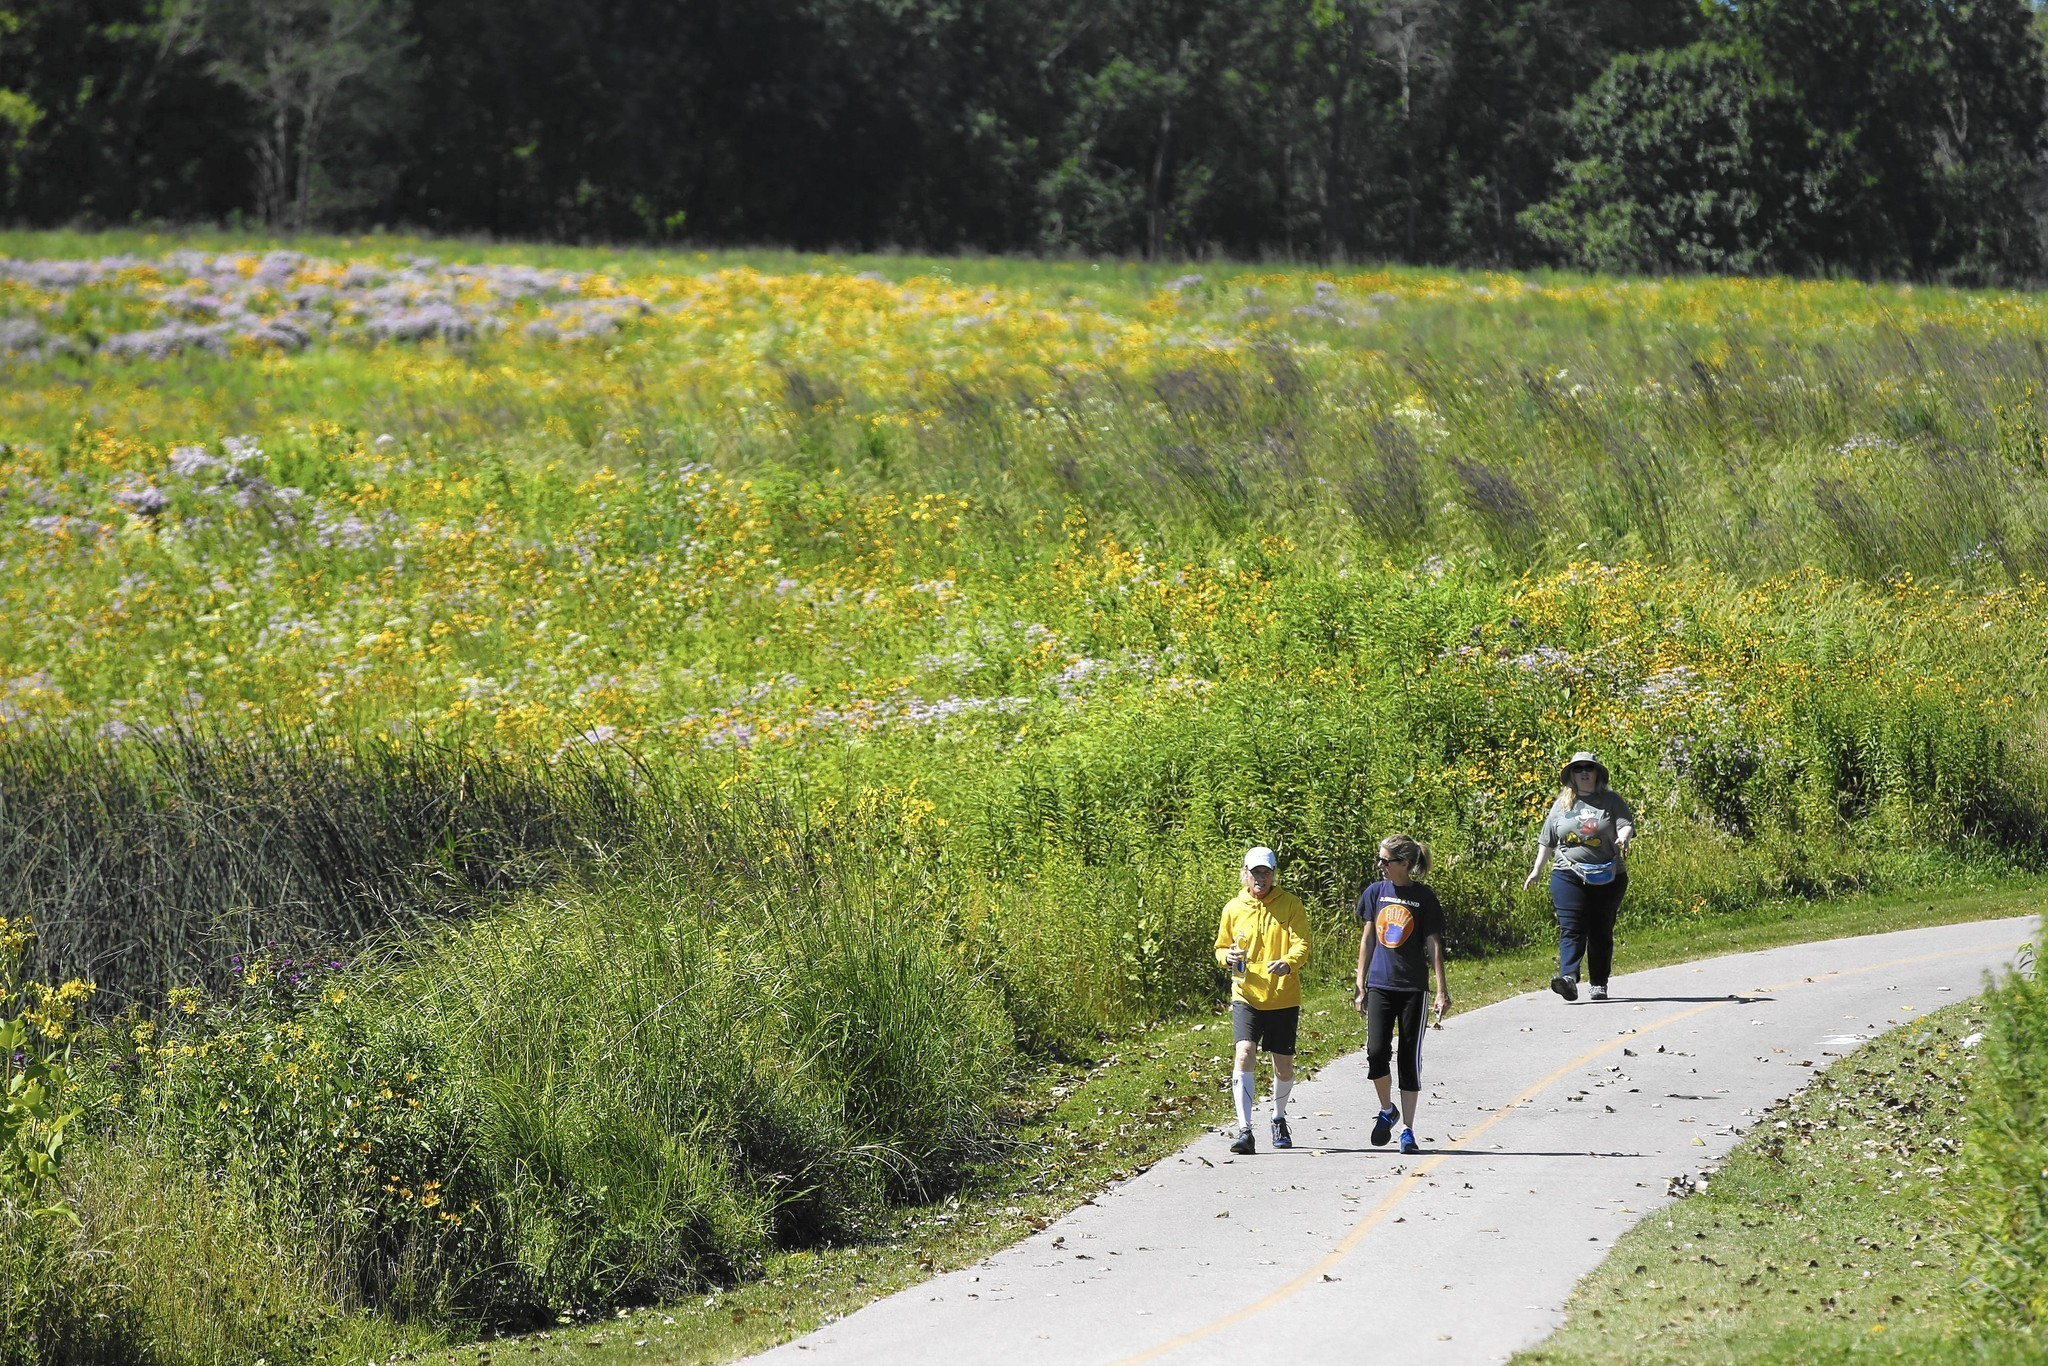 Cook County Forest Preserve District Has Room To Improve